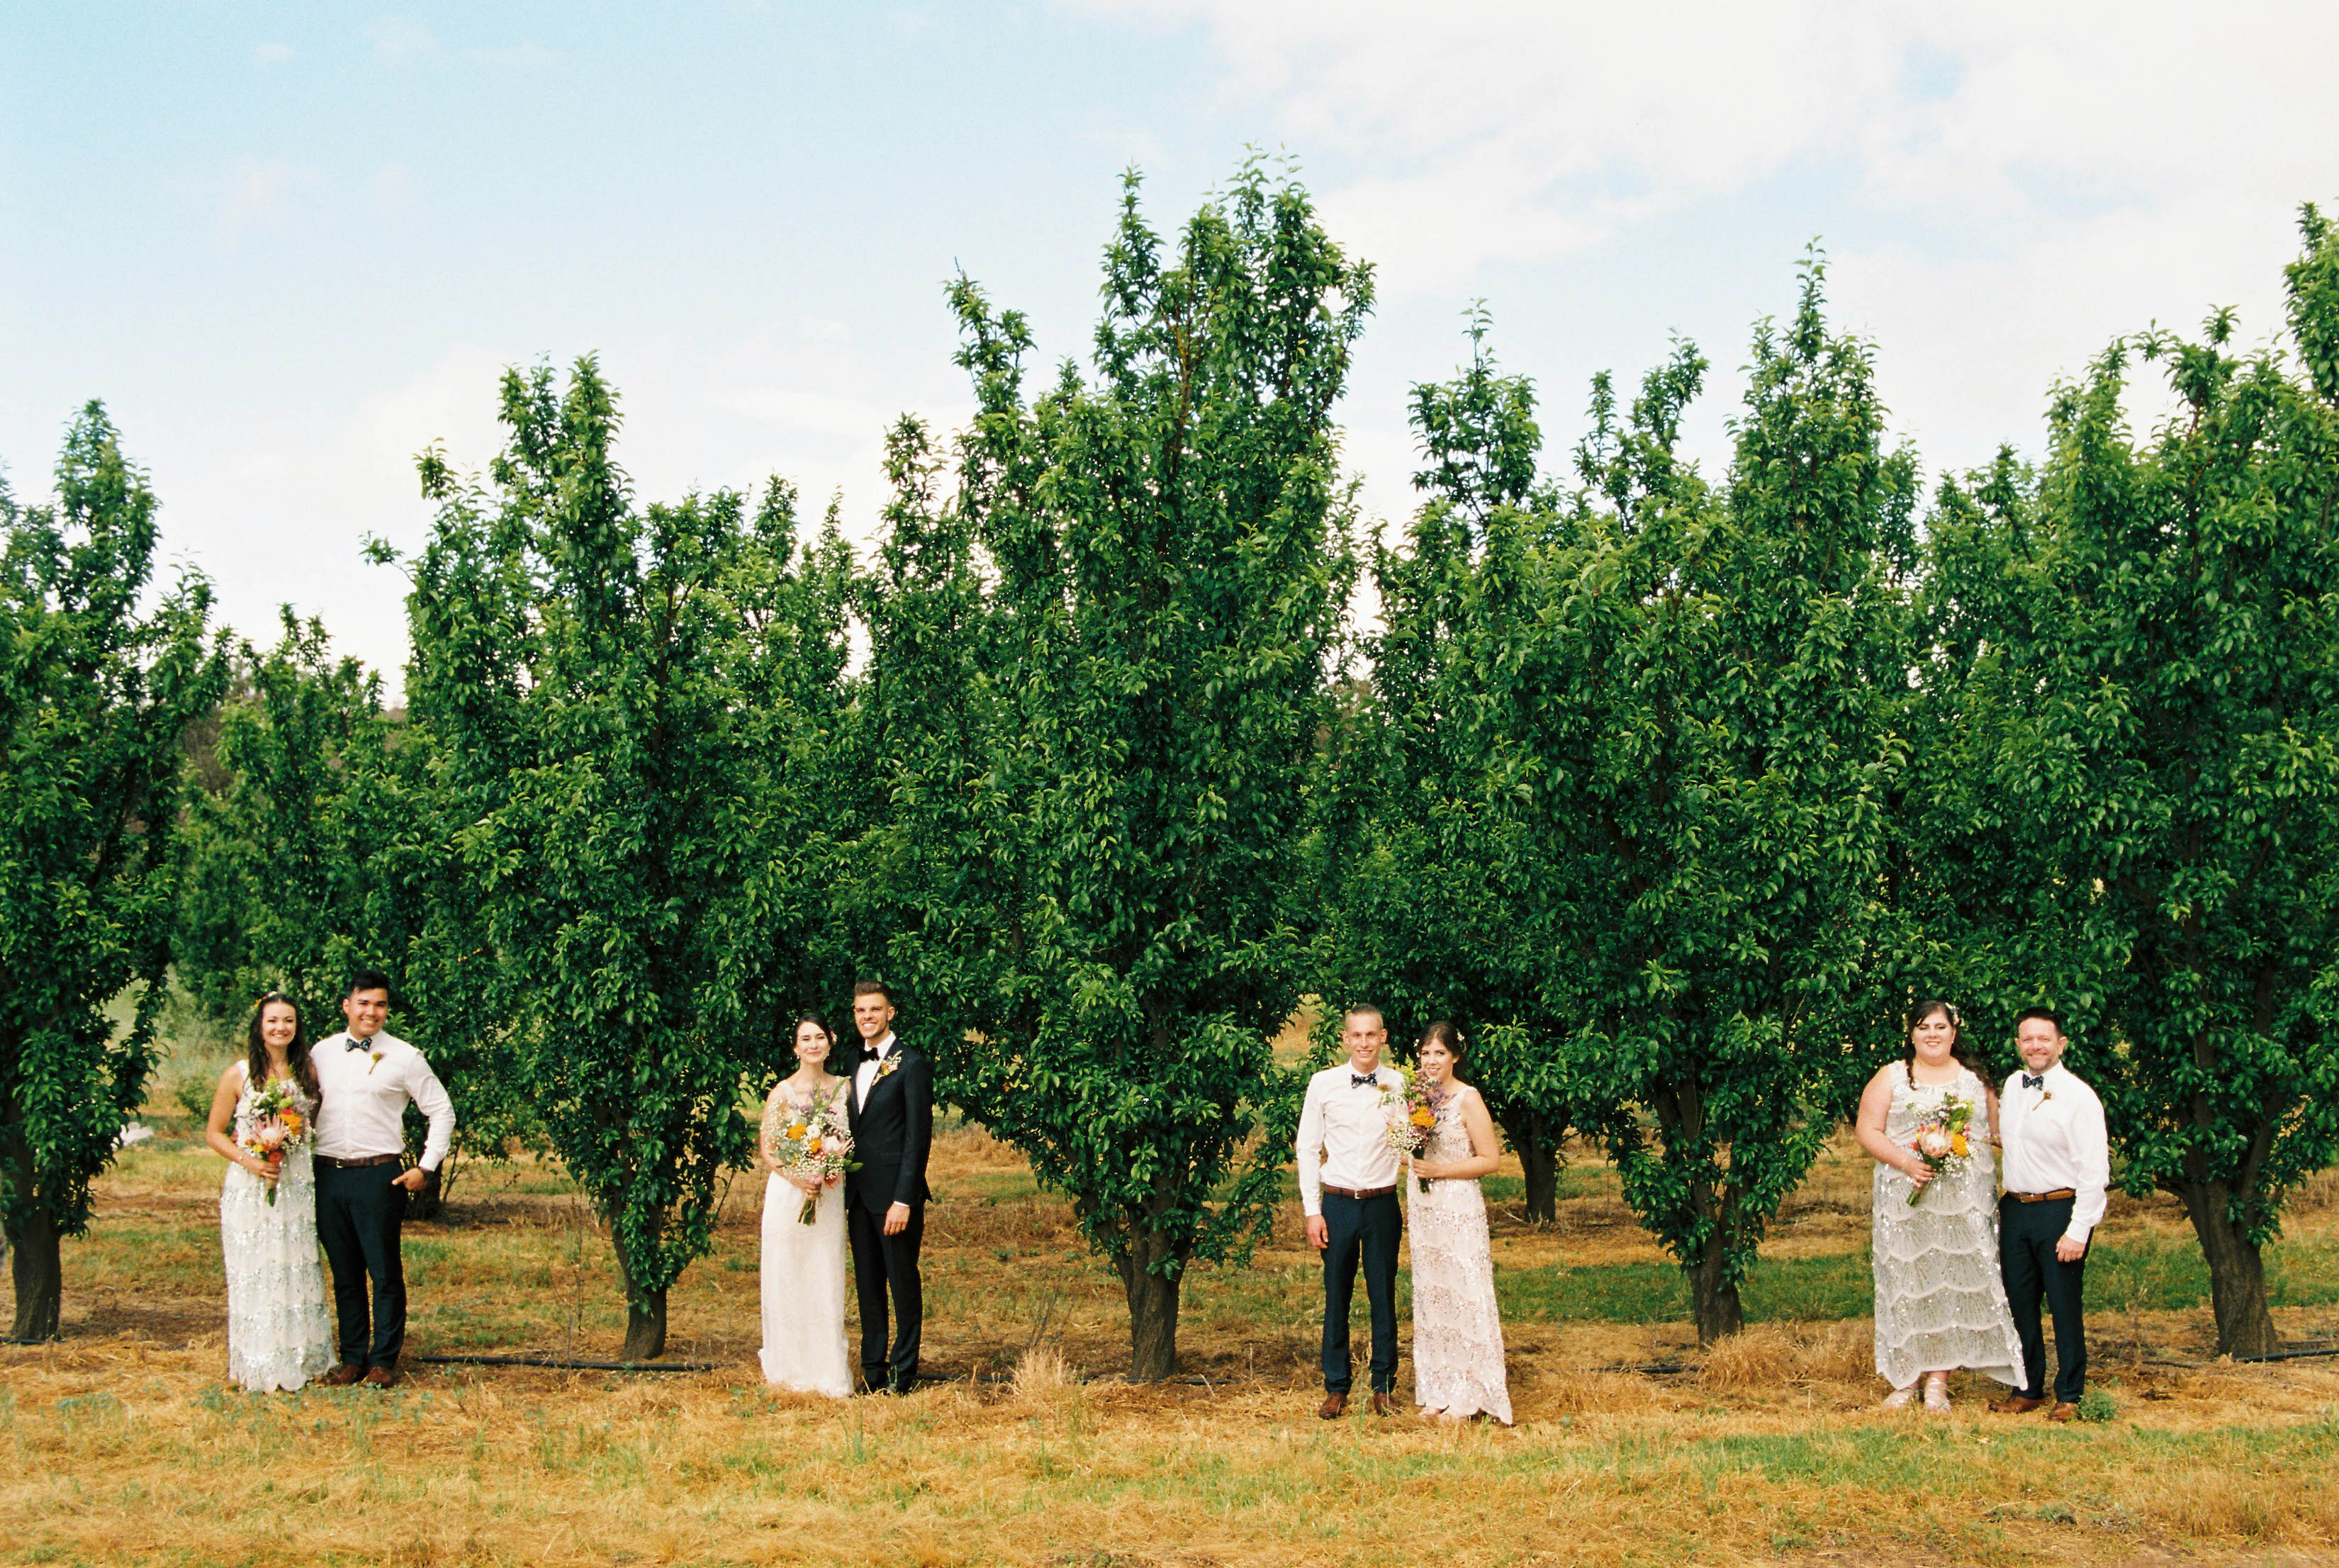 Perth Wedding Photography of a bridal party standing amongst the orchard on the family farm